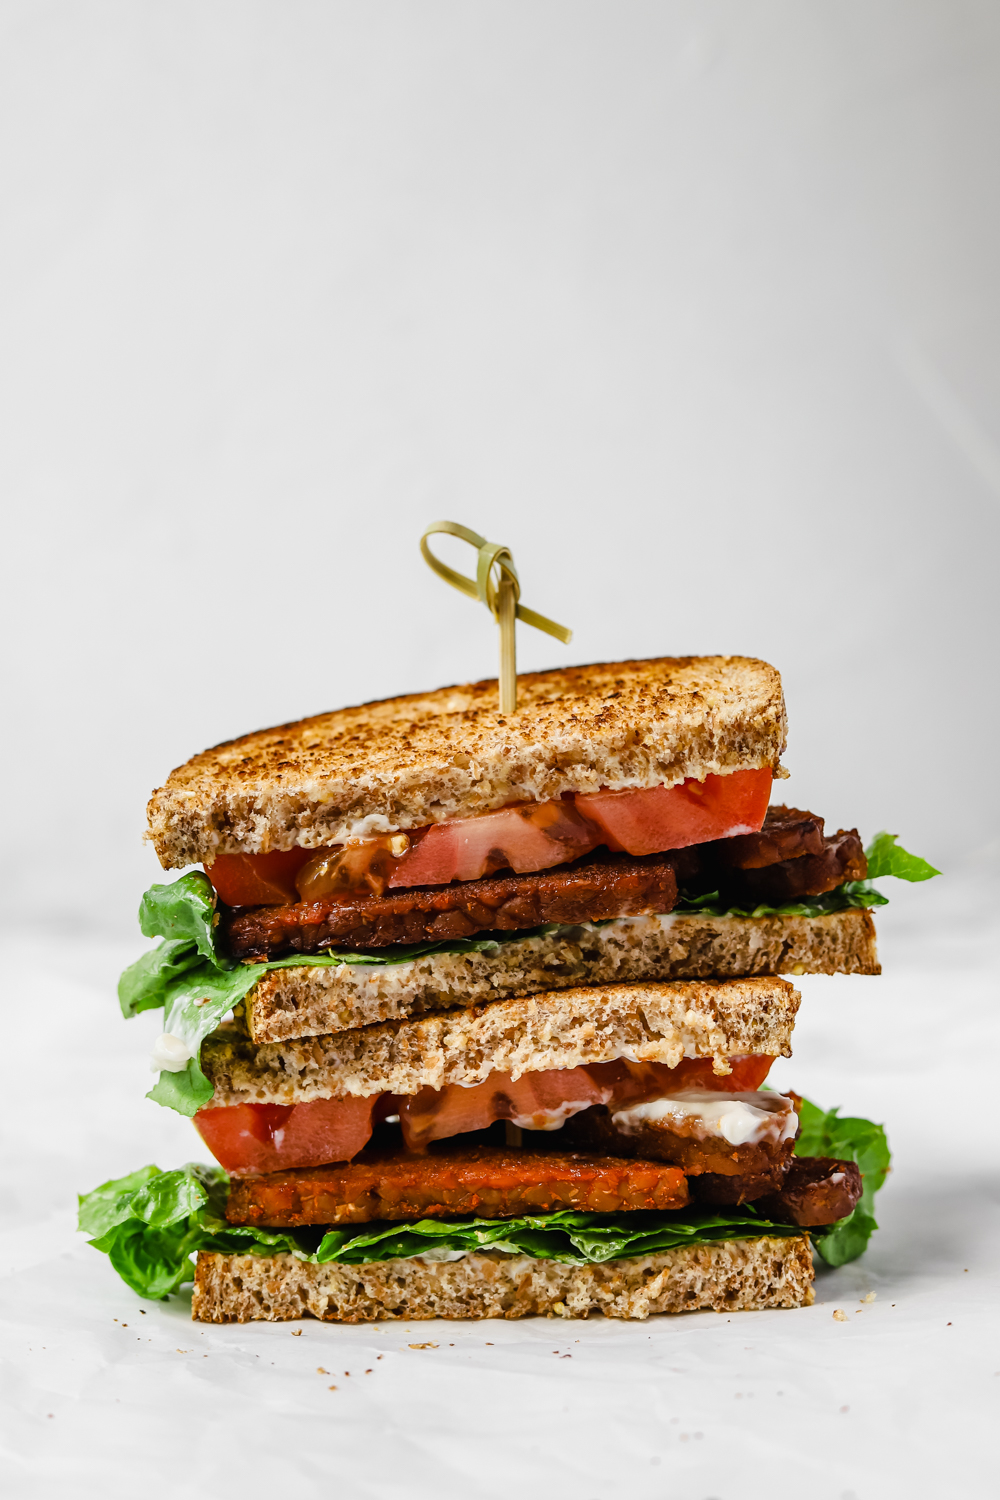 Vegan BLT sandwich with tempeh bacon cut in half.